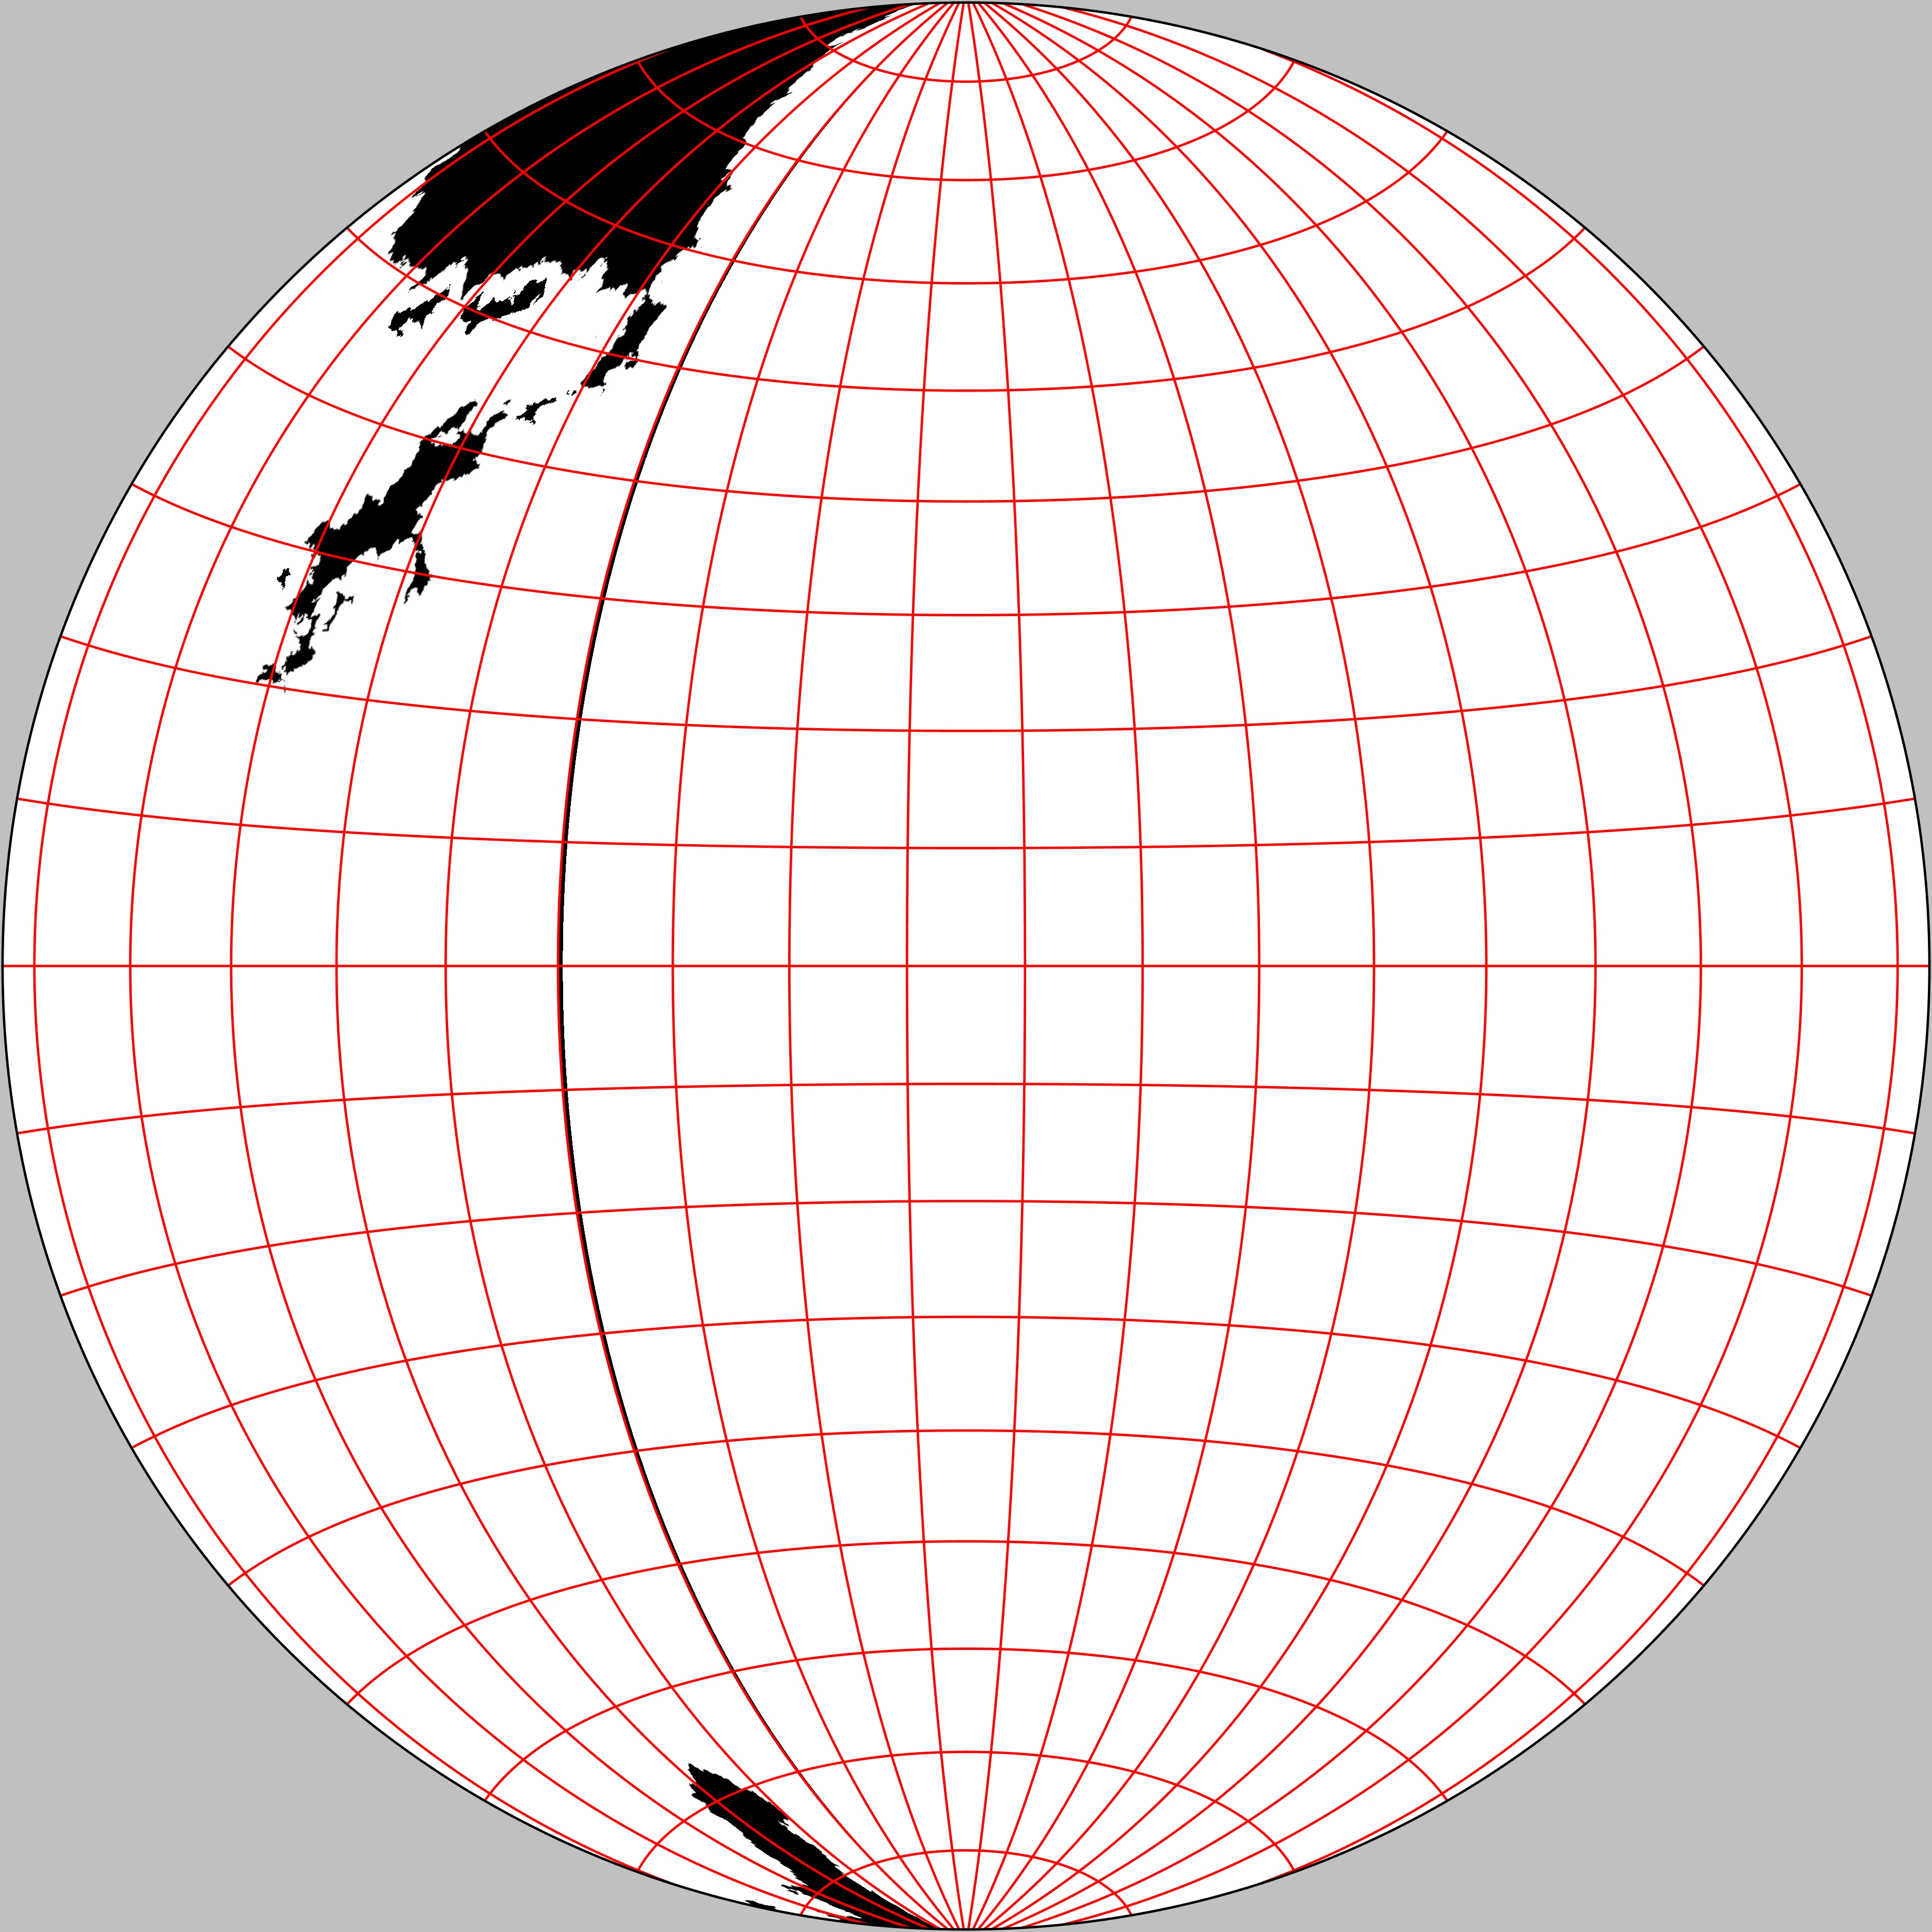 The eastern hemisphere of The Known World. Gott-Mugnolo Azimuthal projection.